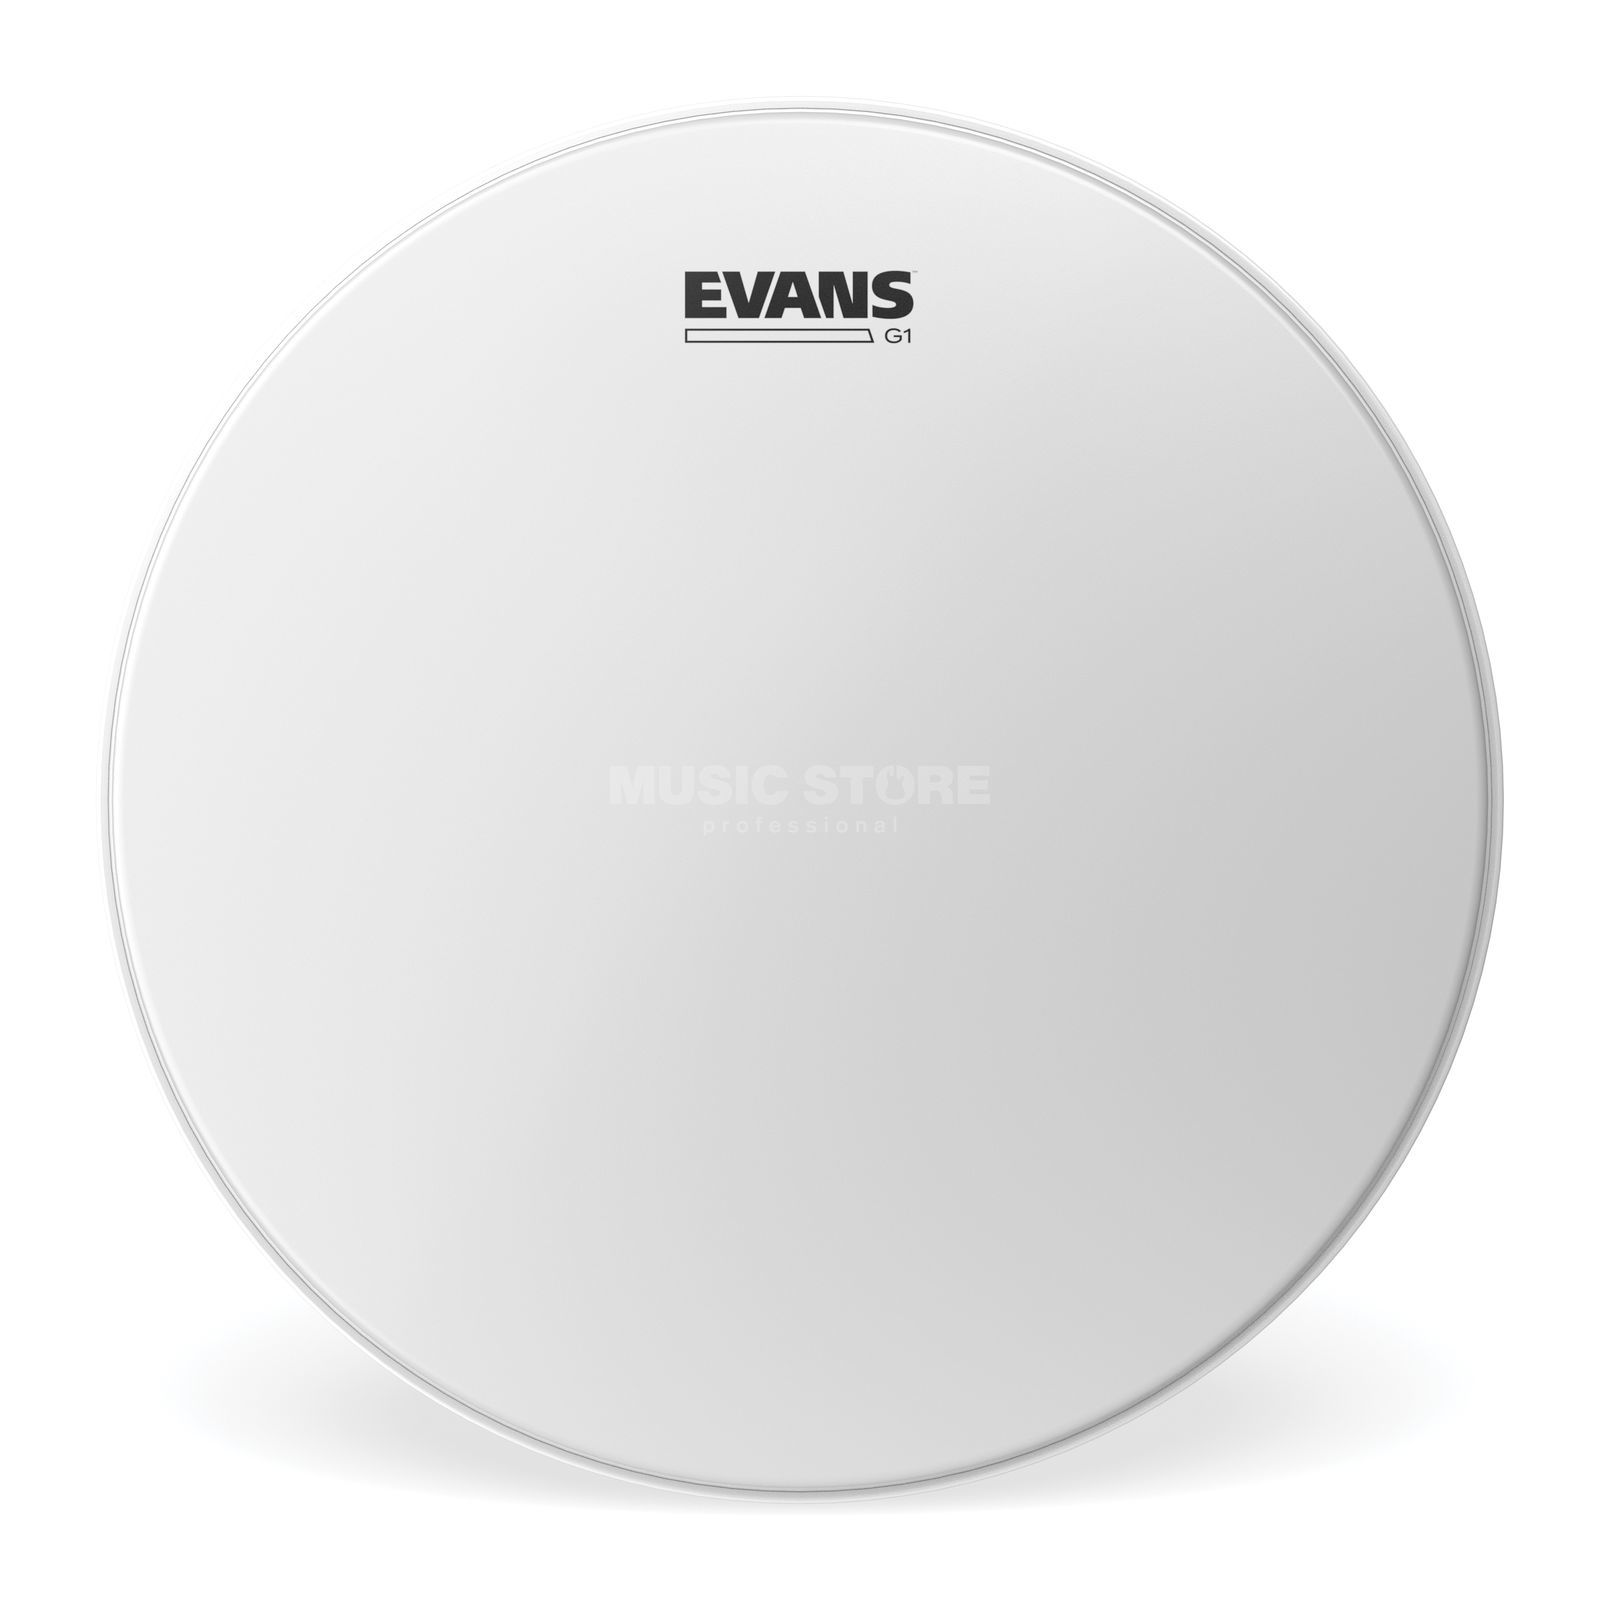 "Evans G1 Coated 13"", B13G1, Tom Batter Produktbild"